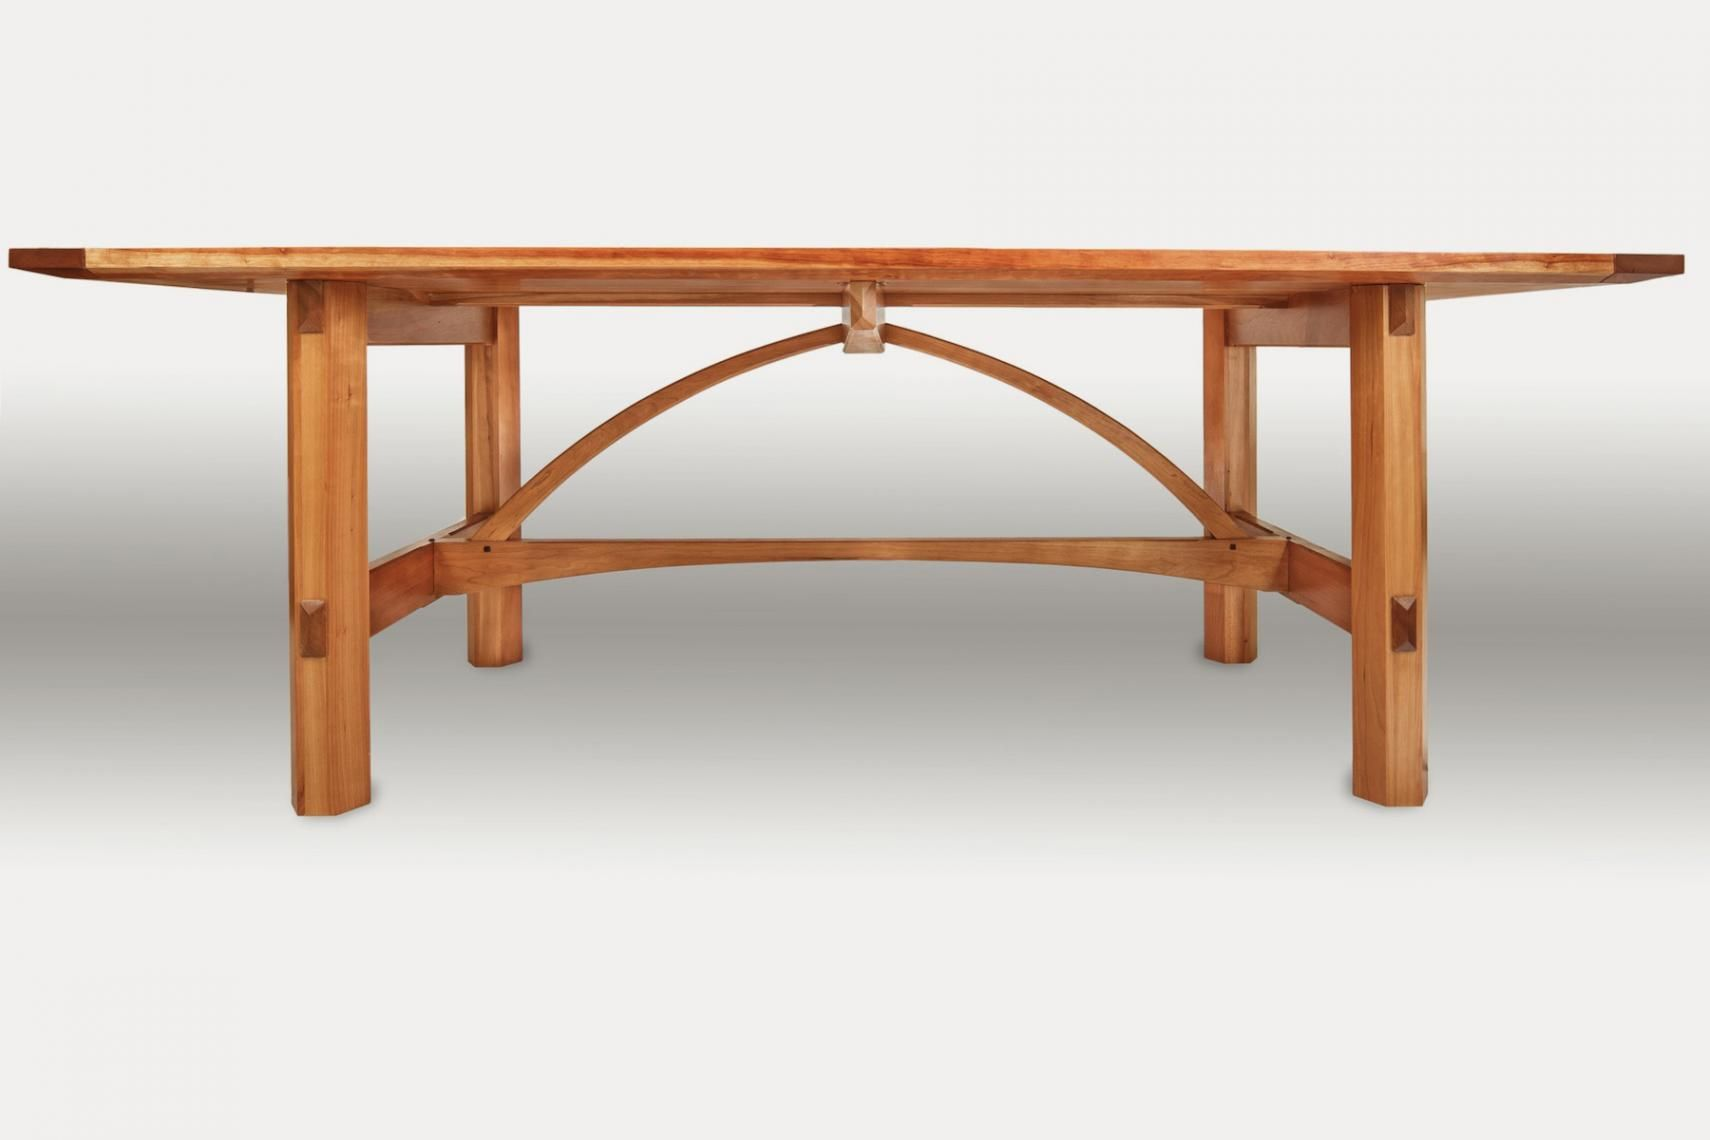 Modern Arts And Crafts Dining Table Modern Wood Furniture